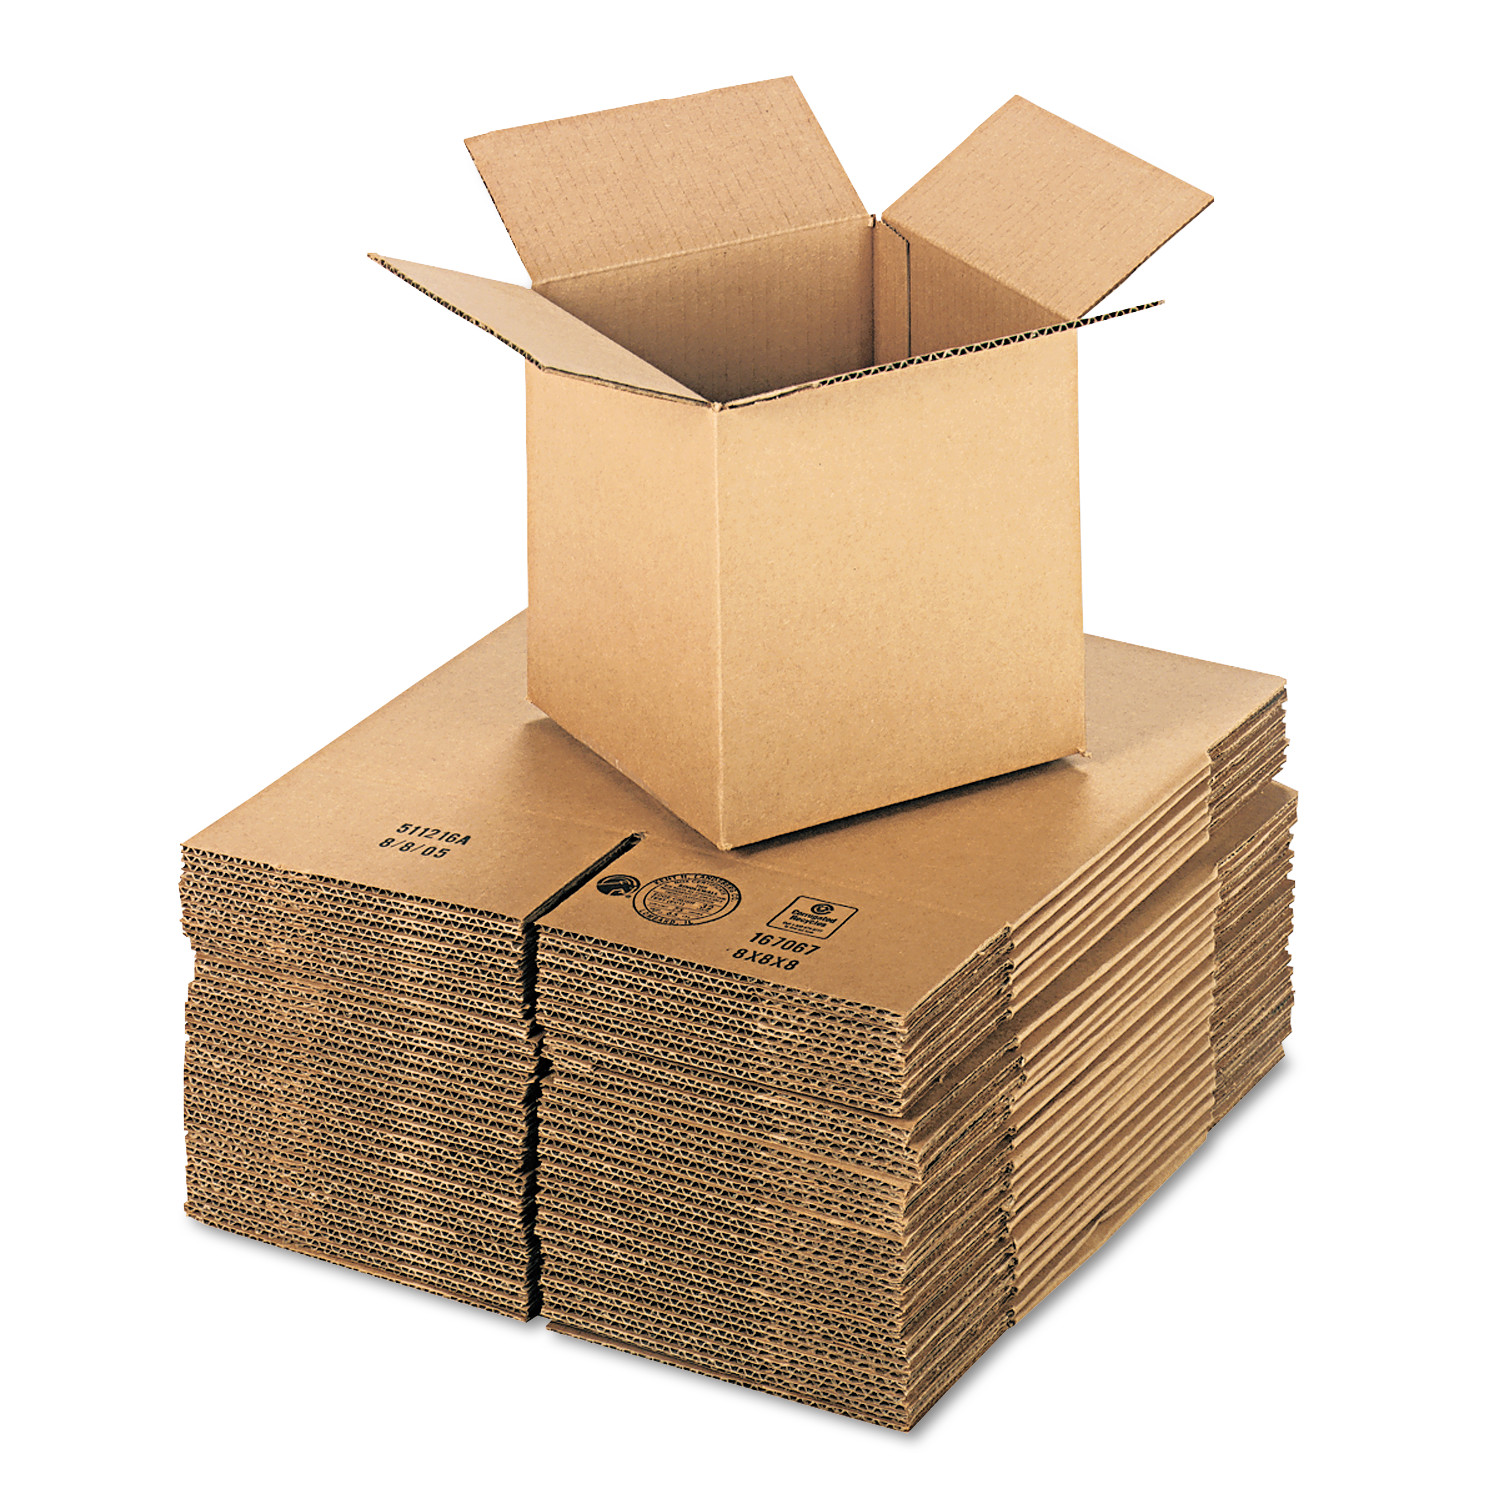 General Supply Brown Corrugated - Cubed Fixed-Depth Shipping Boxes, 8l x 8w x 8h, 25/Bundle -UFS888